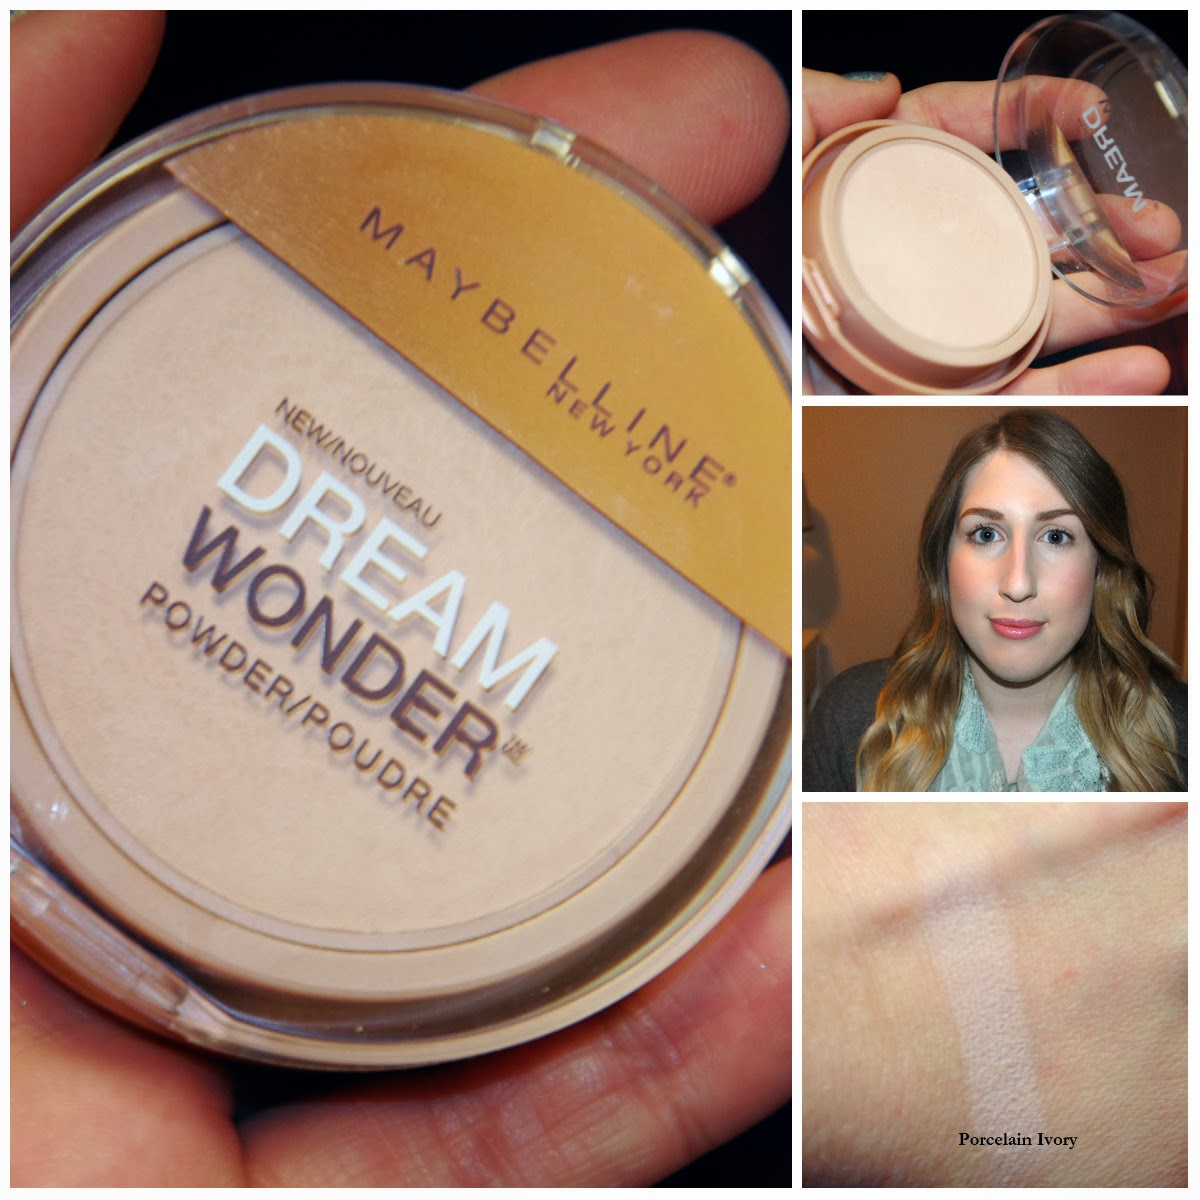 Maybelline Dream Wonder Powder, No. 10 Porcelain Ivory, Review and Swatch